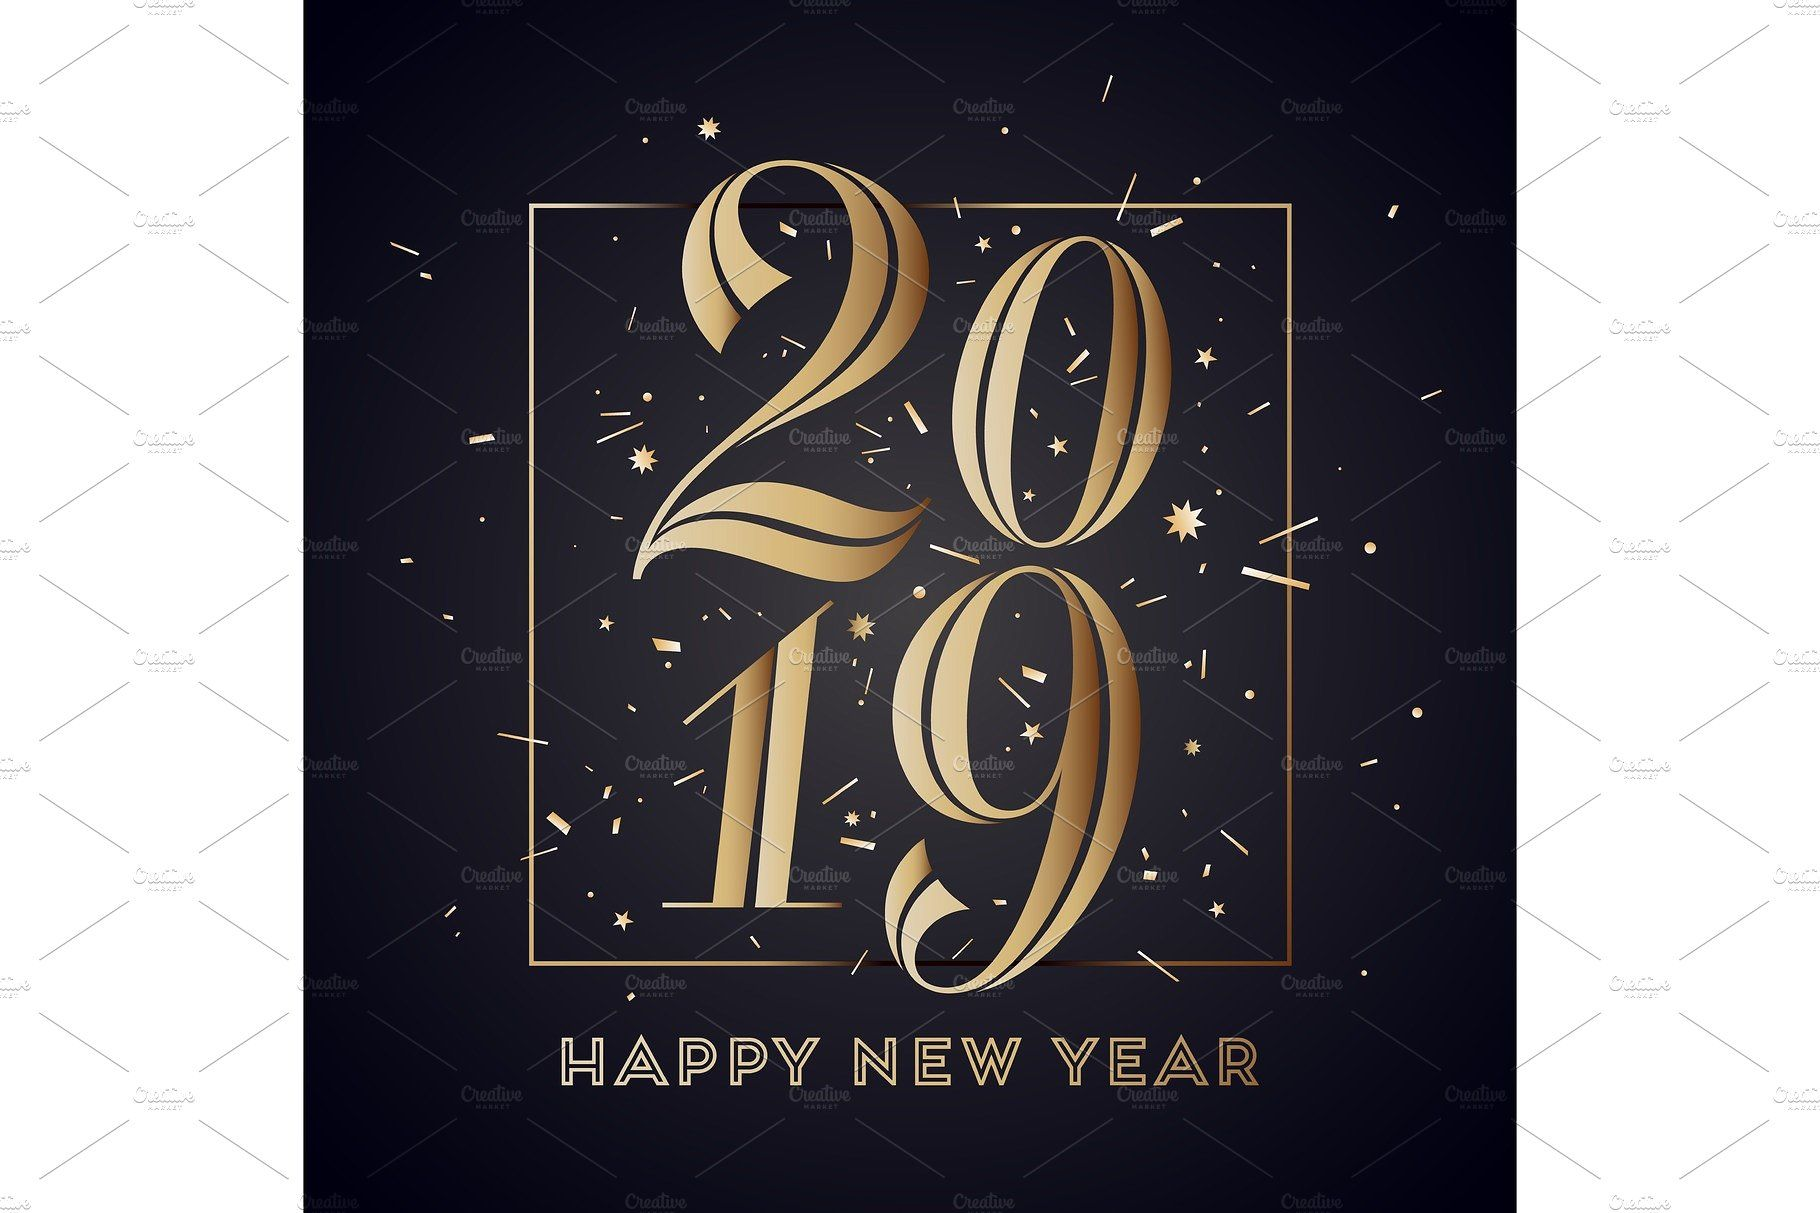 2019. Happy New Year. Greeting card inscriptionstyle